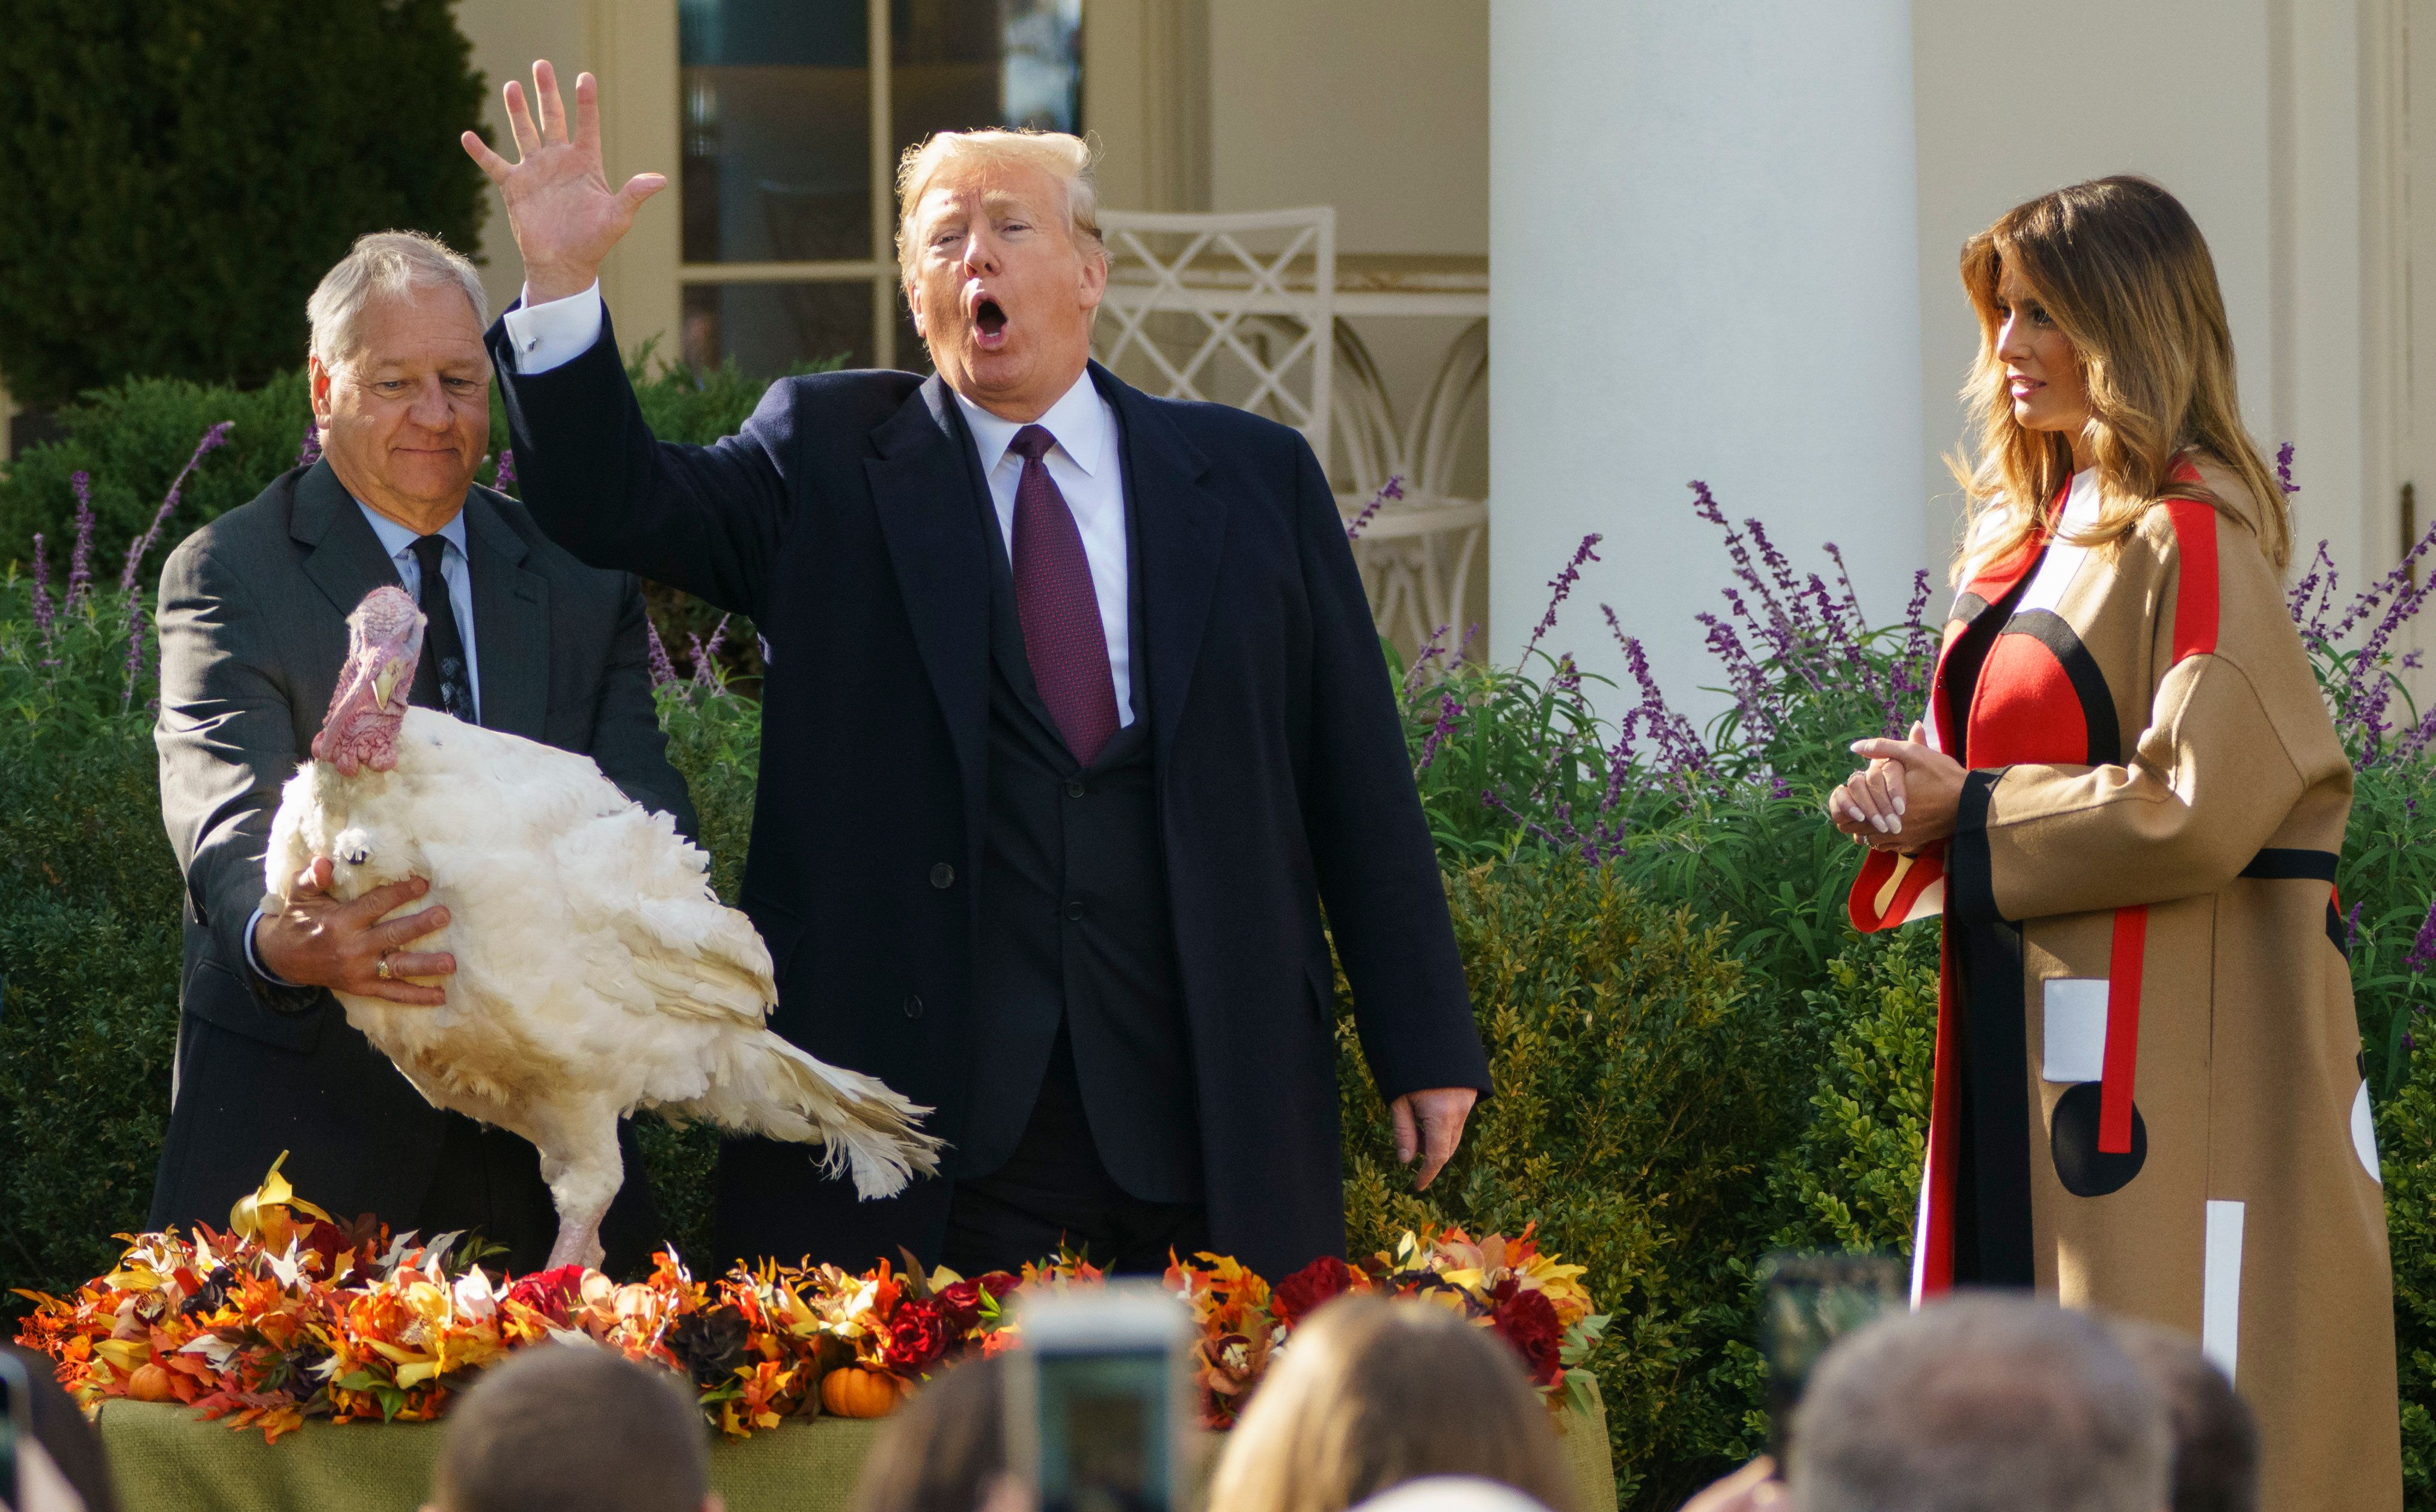 """President Donald Trump pardons """"Peas"""", as he and first lady Melania Trump participate in a ceremony to pardon the National Thanksgiving Turkey in the Rose Garden of the White House in Washington, Tuesday, Nov. 20, 2018. (AP Photo/Carolyn Kaster)"""